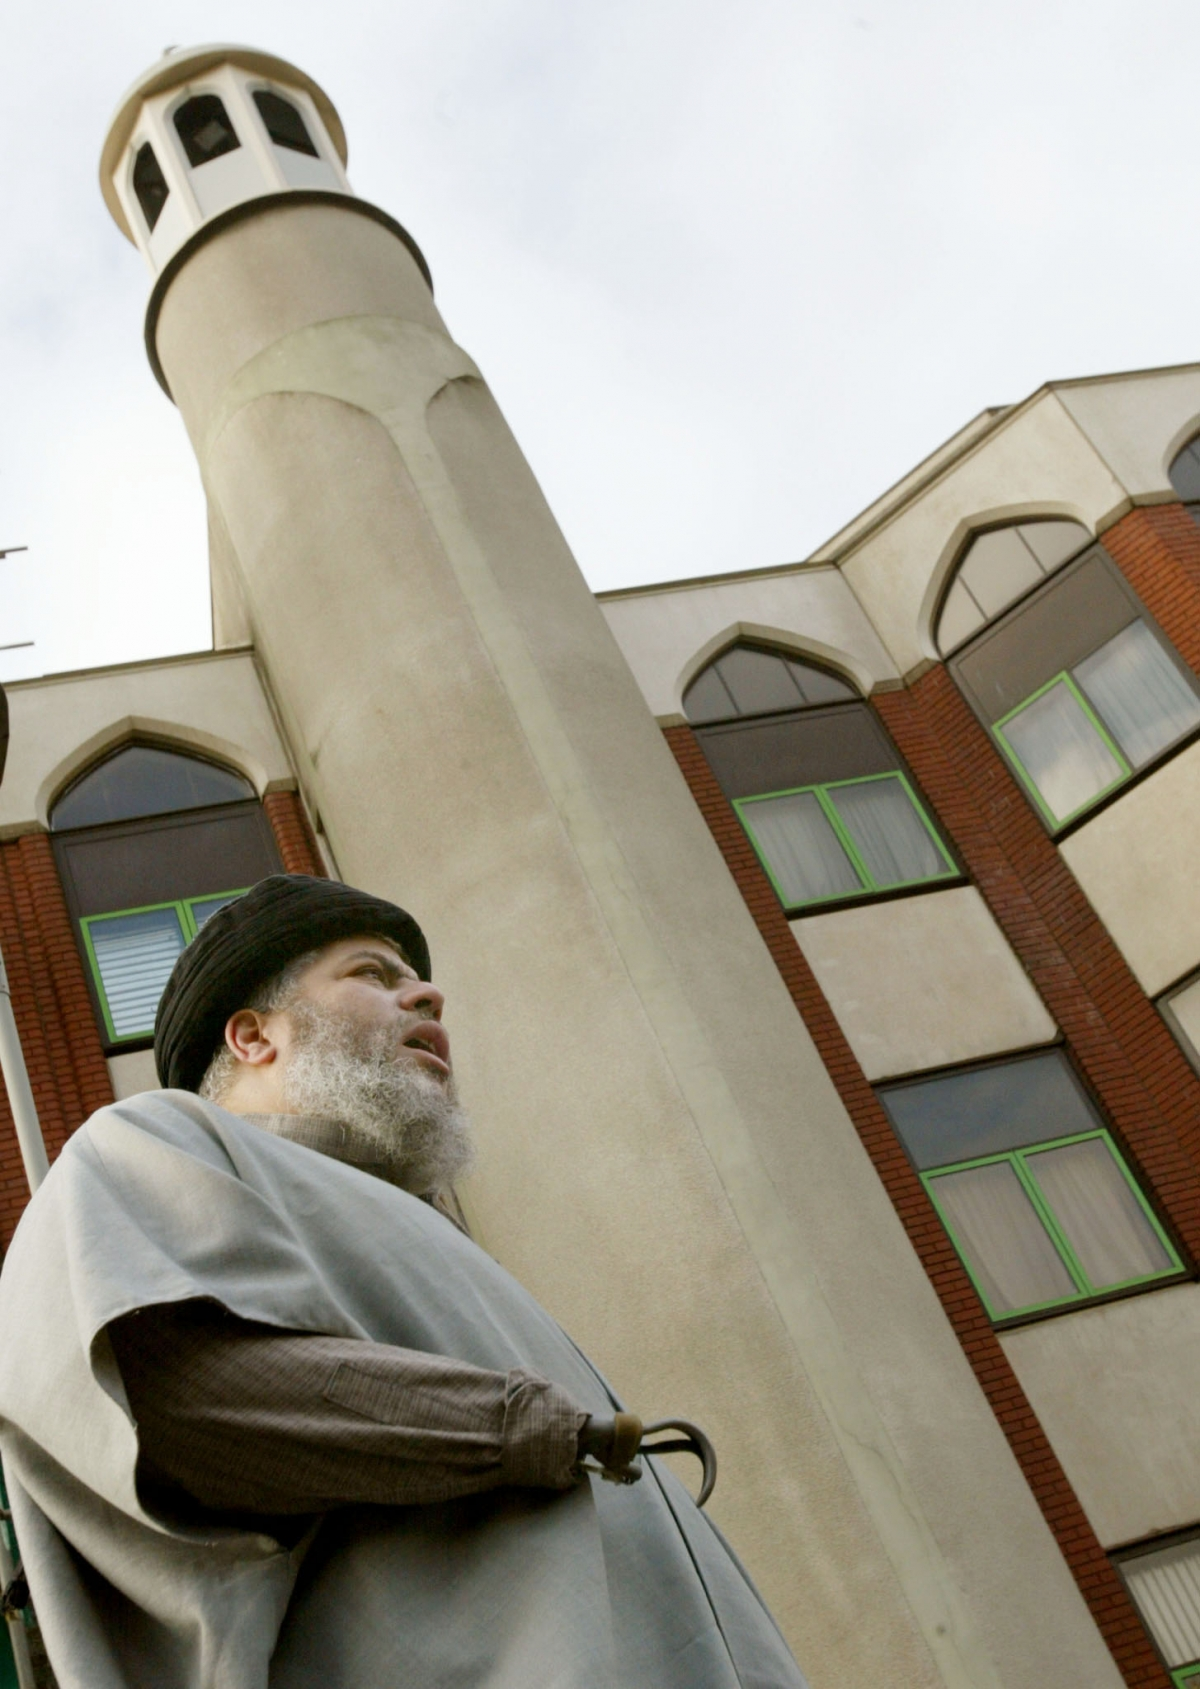 Muslim cleric,Abu Hamza al-Masri, leads prayers outside the North London Central Mosque, in the Fins